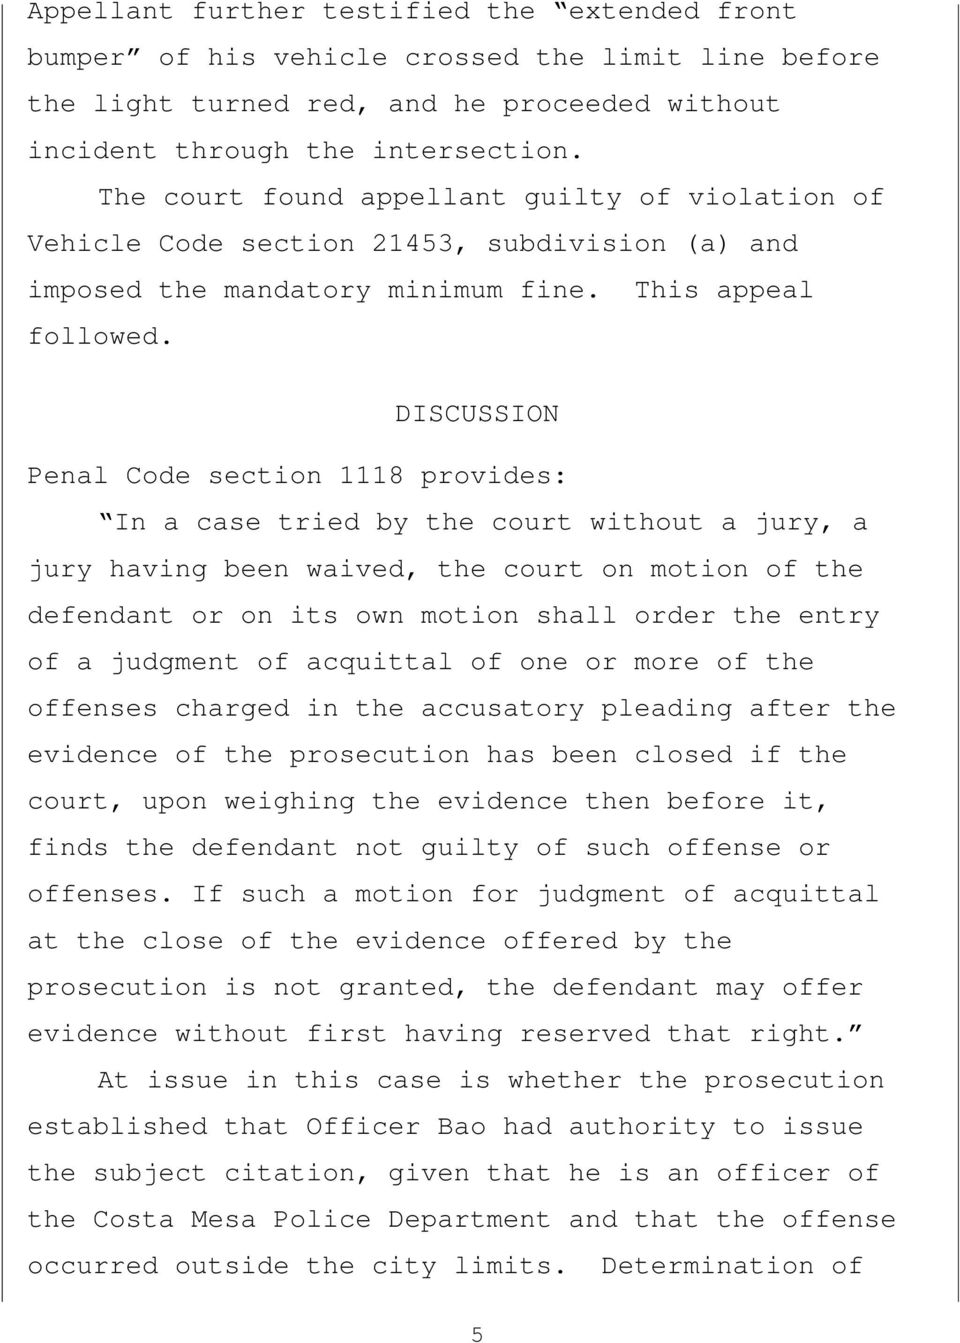 DISCUSSION Penal Code section 1118 provides: In a case tried by the court without a jury, a jury having been waived, the court on motion of the defendant or on its own motion shall order the entry of